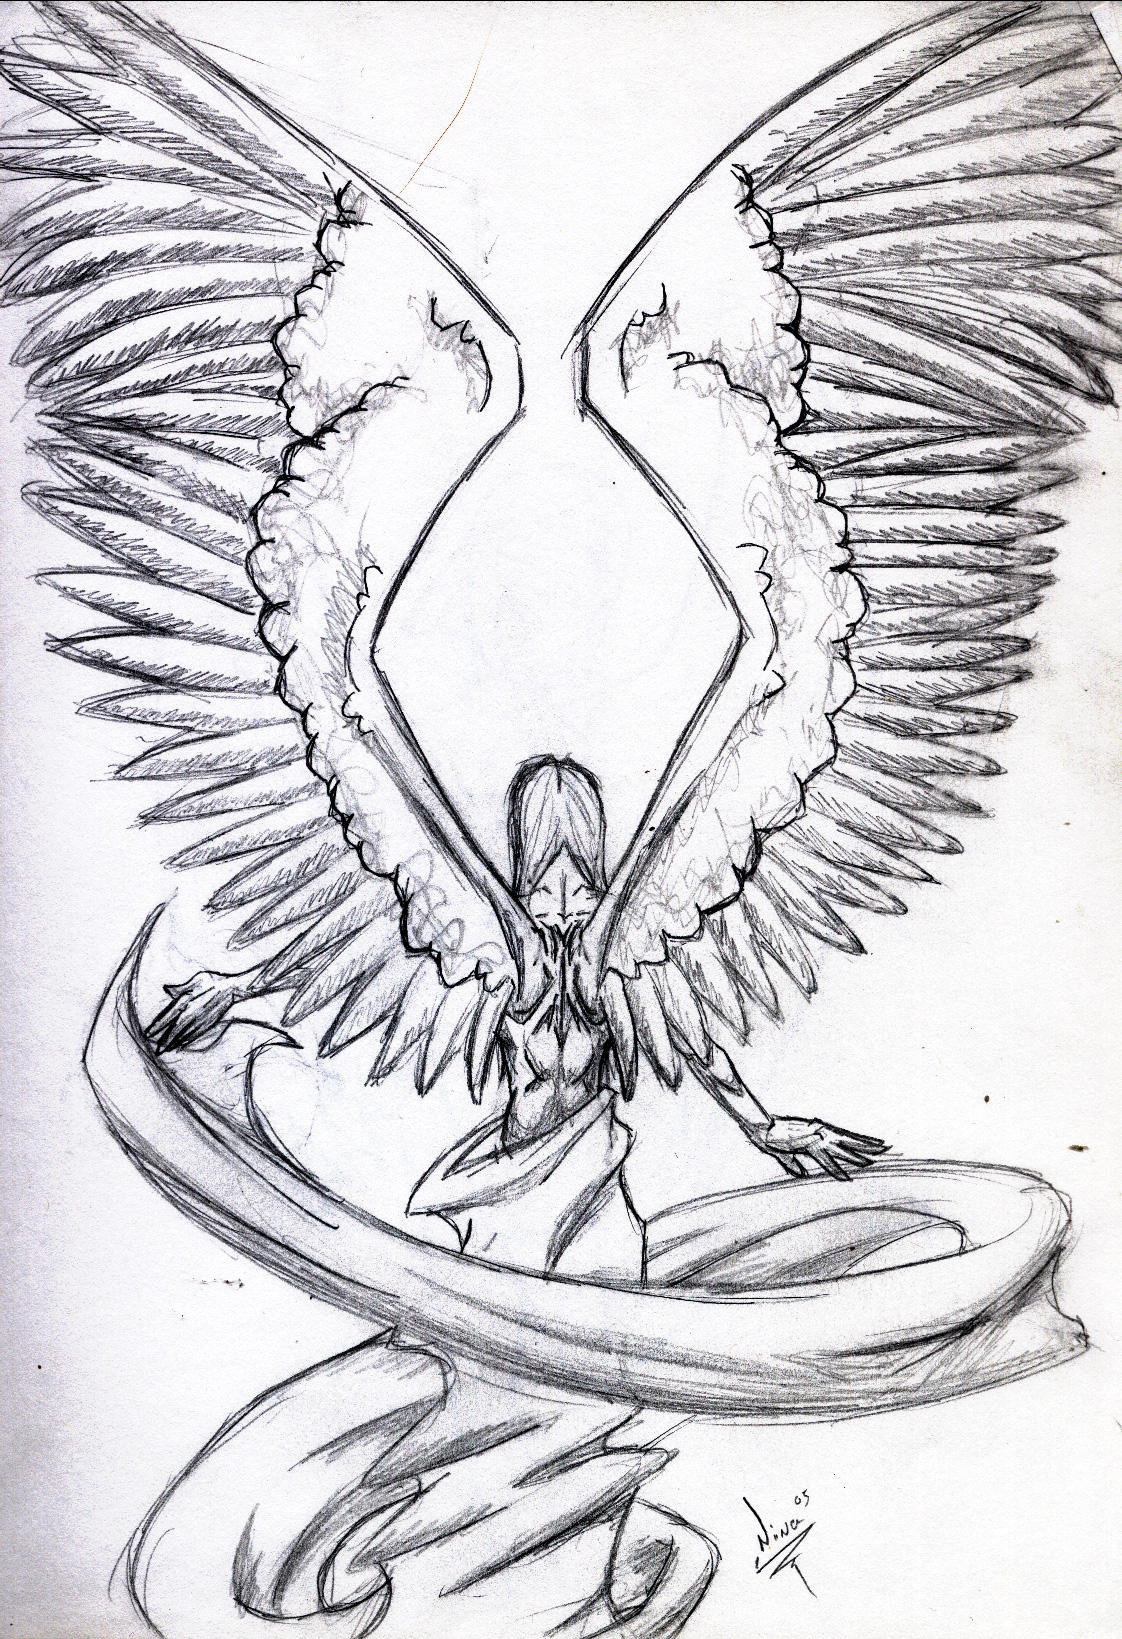 Angel Wings Orig Sketch by MagikLamp on DeviantArt